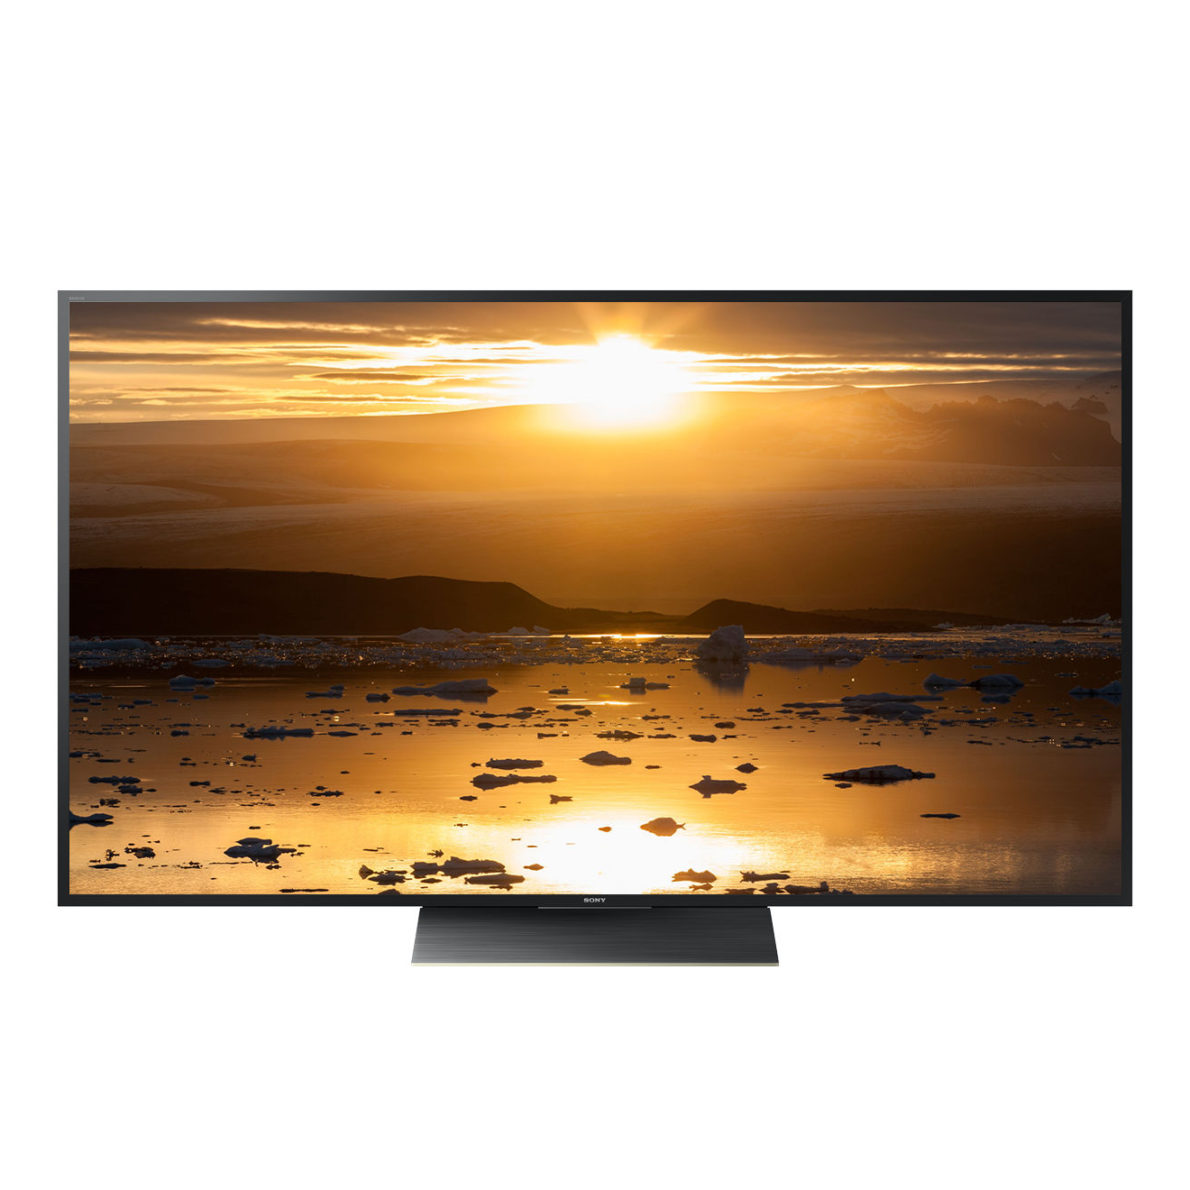 Sony 65 inch X8500D 4K Smart WiFi Led TV Price in Bangladesh